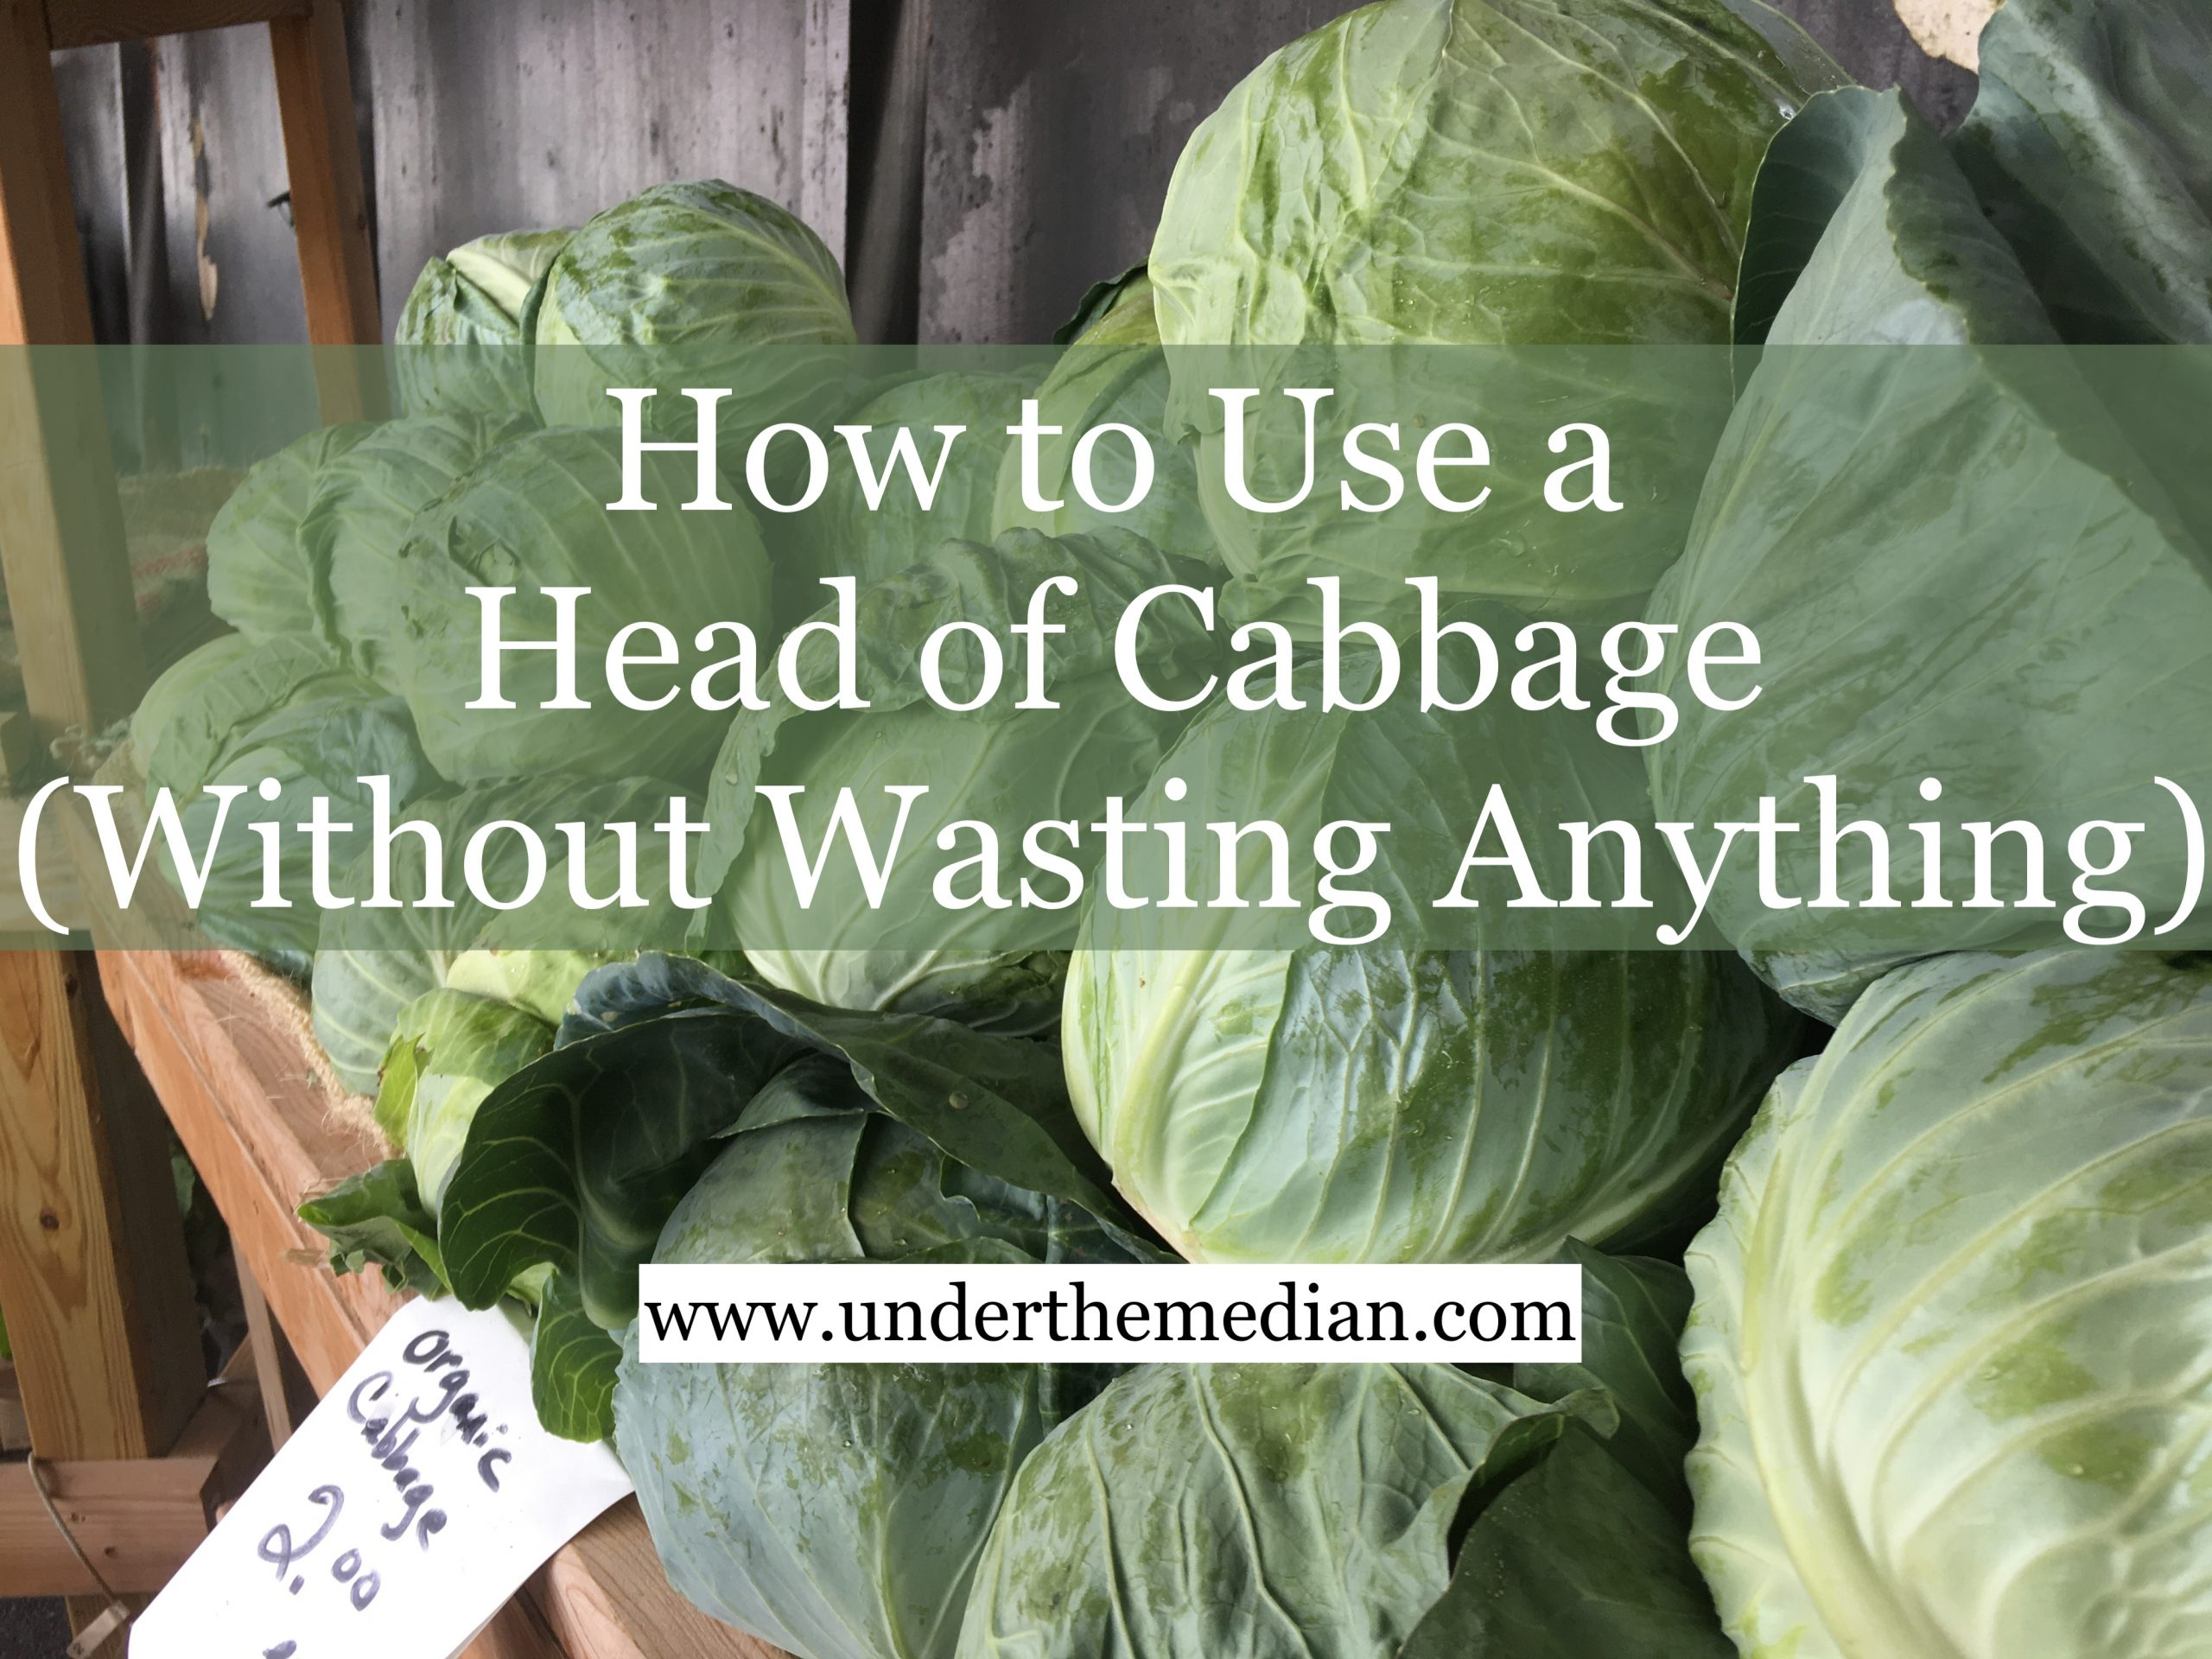 How to Use a Head of Cabbage Without Wasting Anything